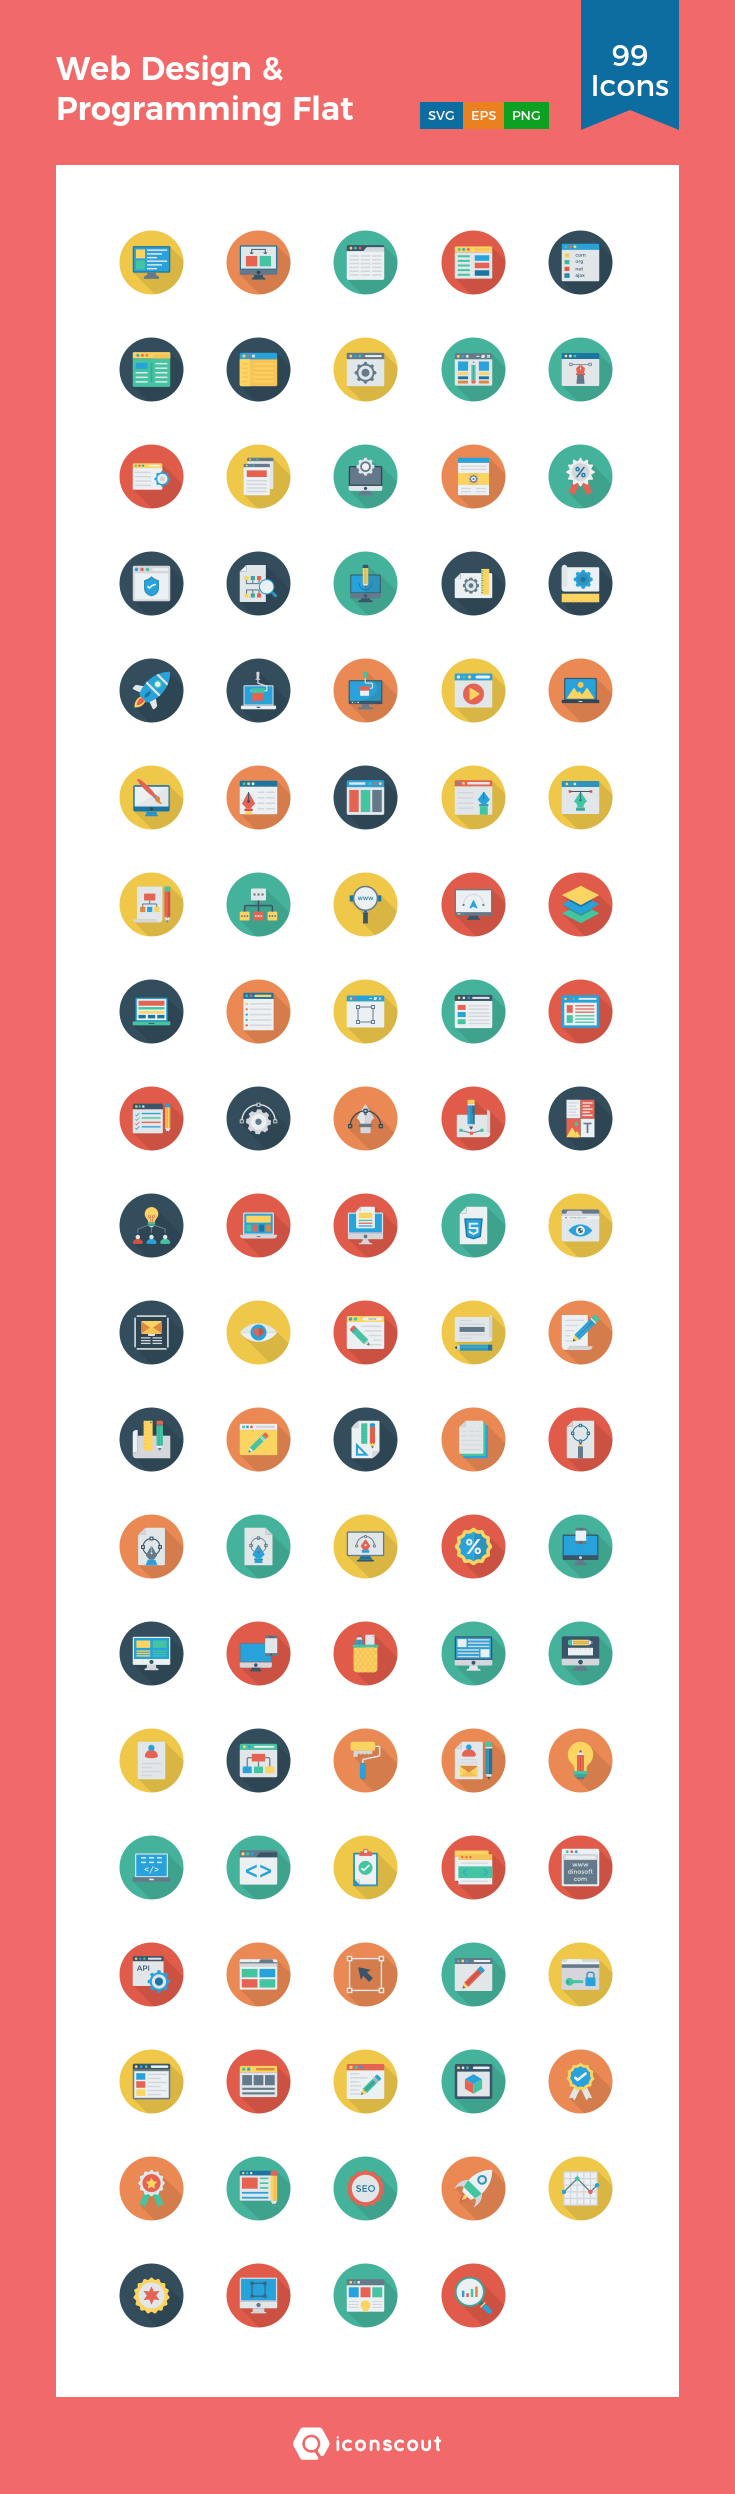 Download Web Design Programming Flat Circle Icon Pack Available In Svg Png Eps Ai Icon Fonts Icon Pack Icon Icon Font